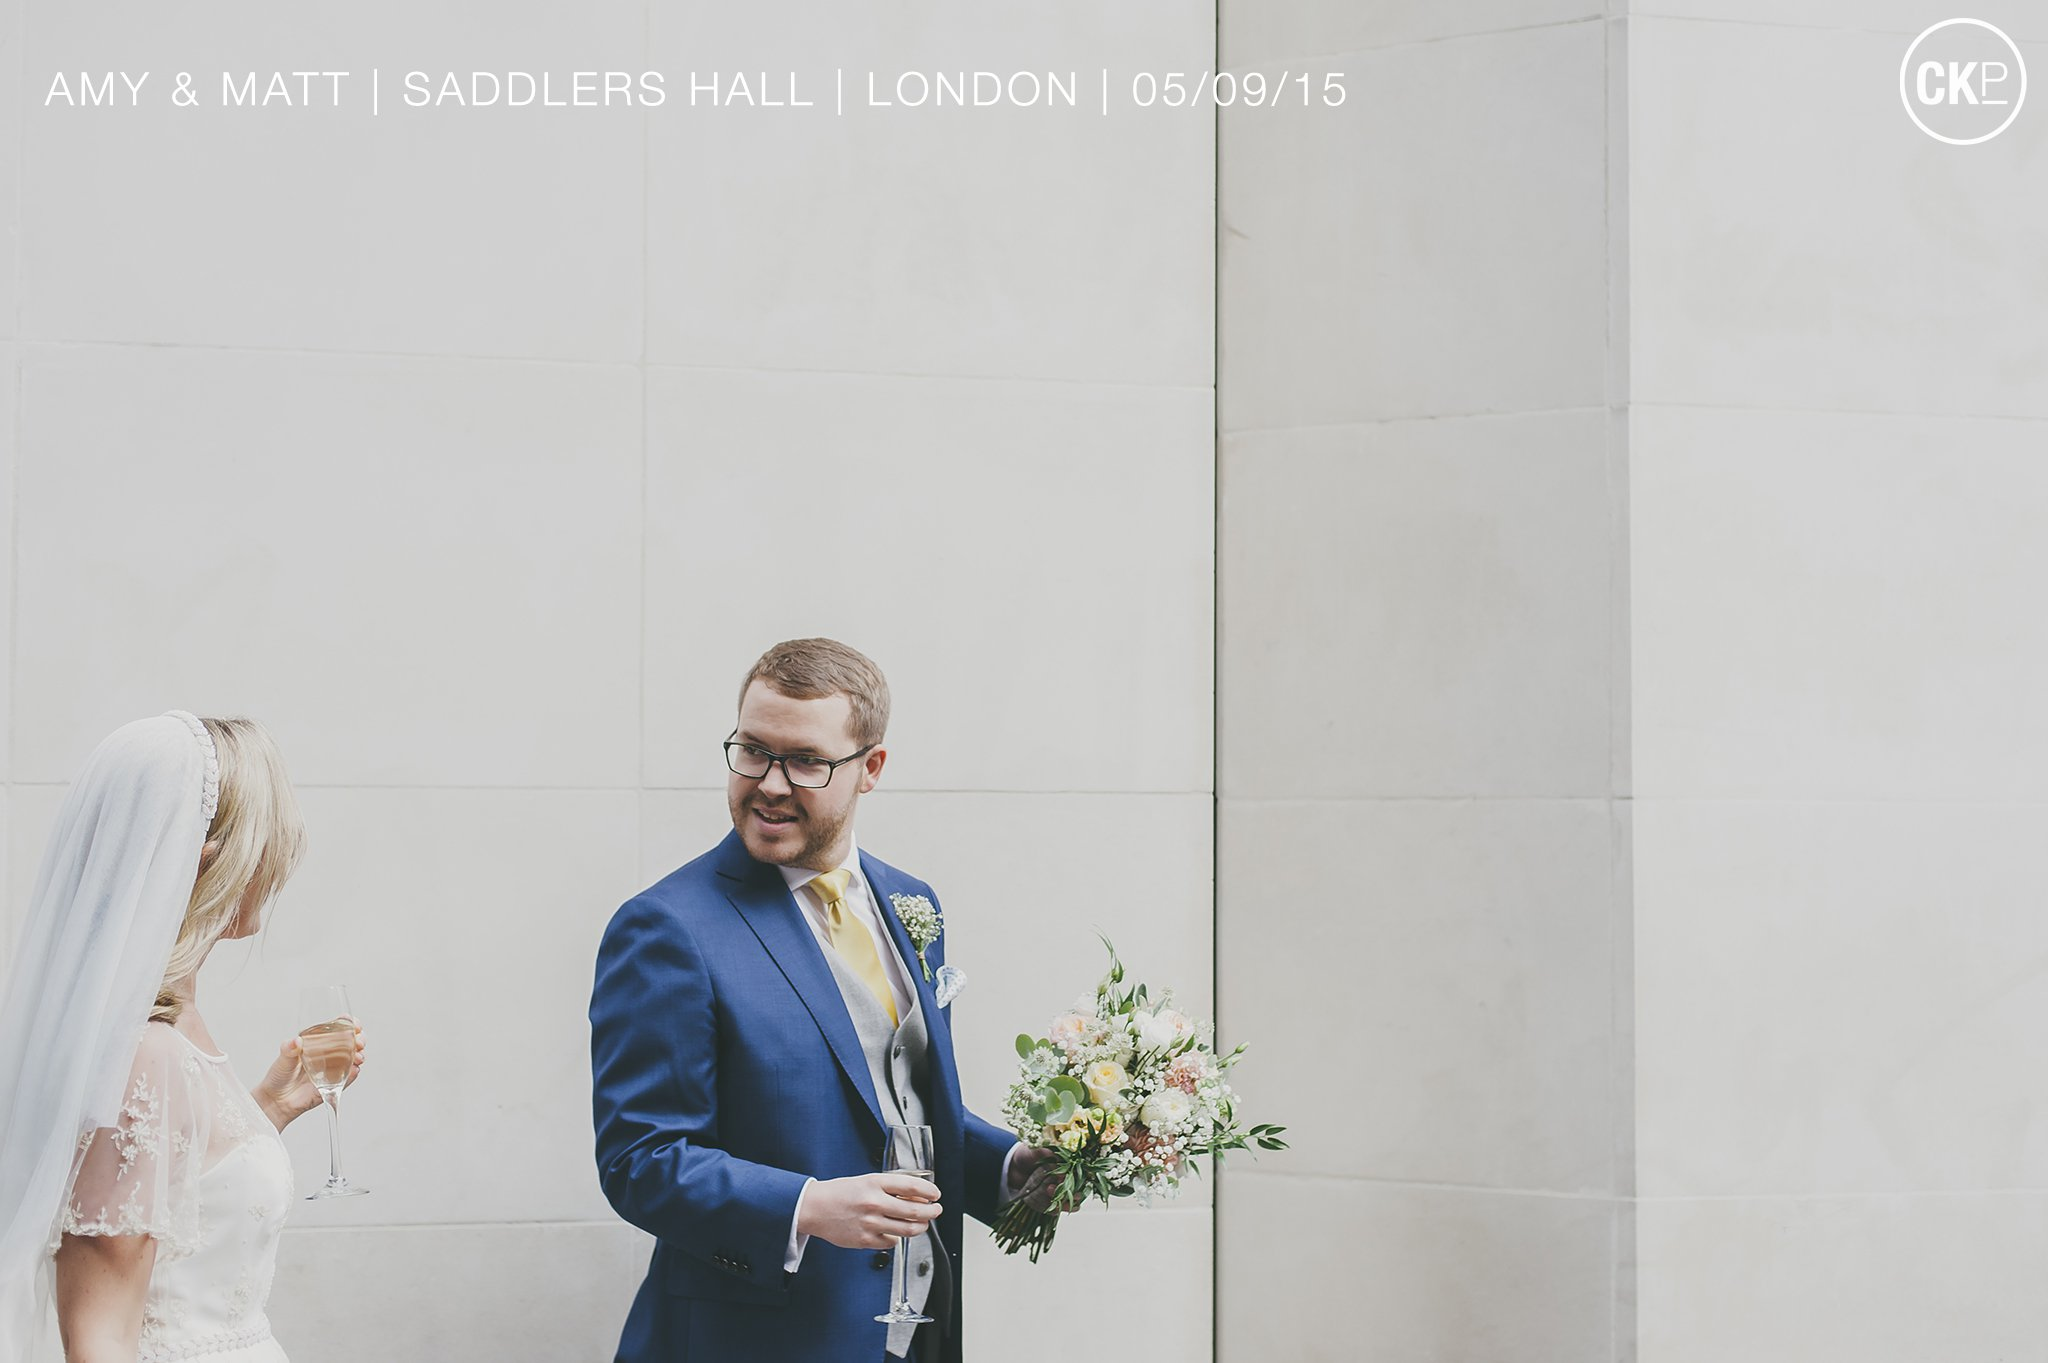 Saddlers Hall London Wedding Photography Copyright Charlotte Knee Photography_0001.jpg